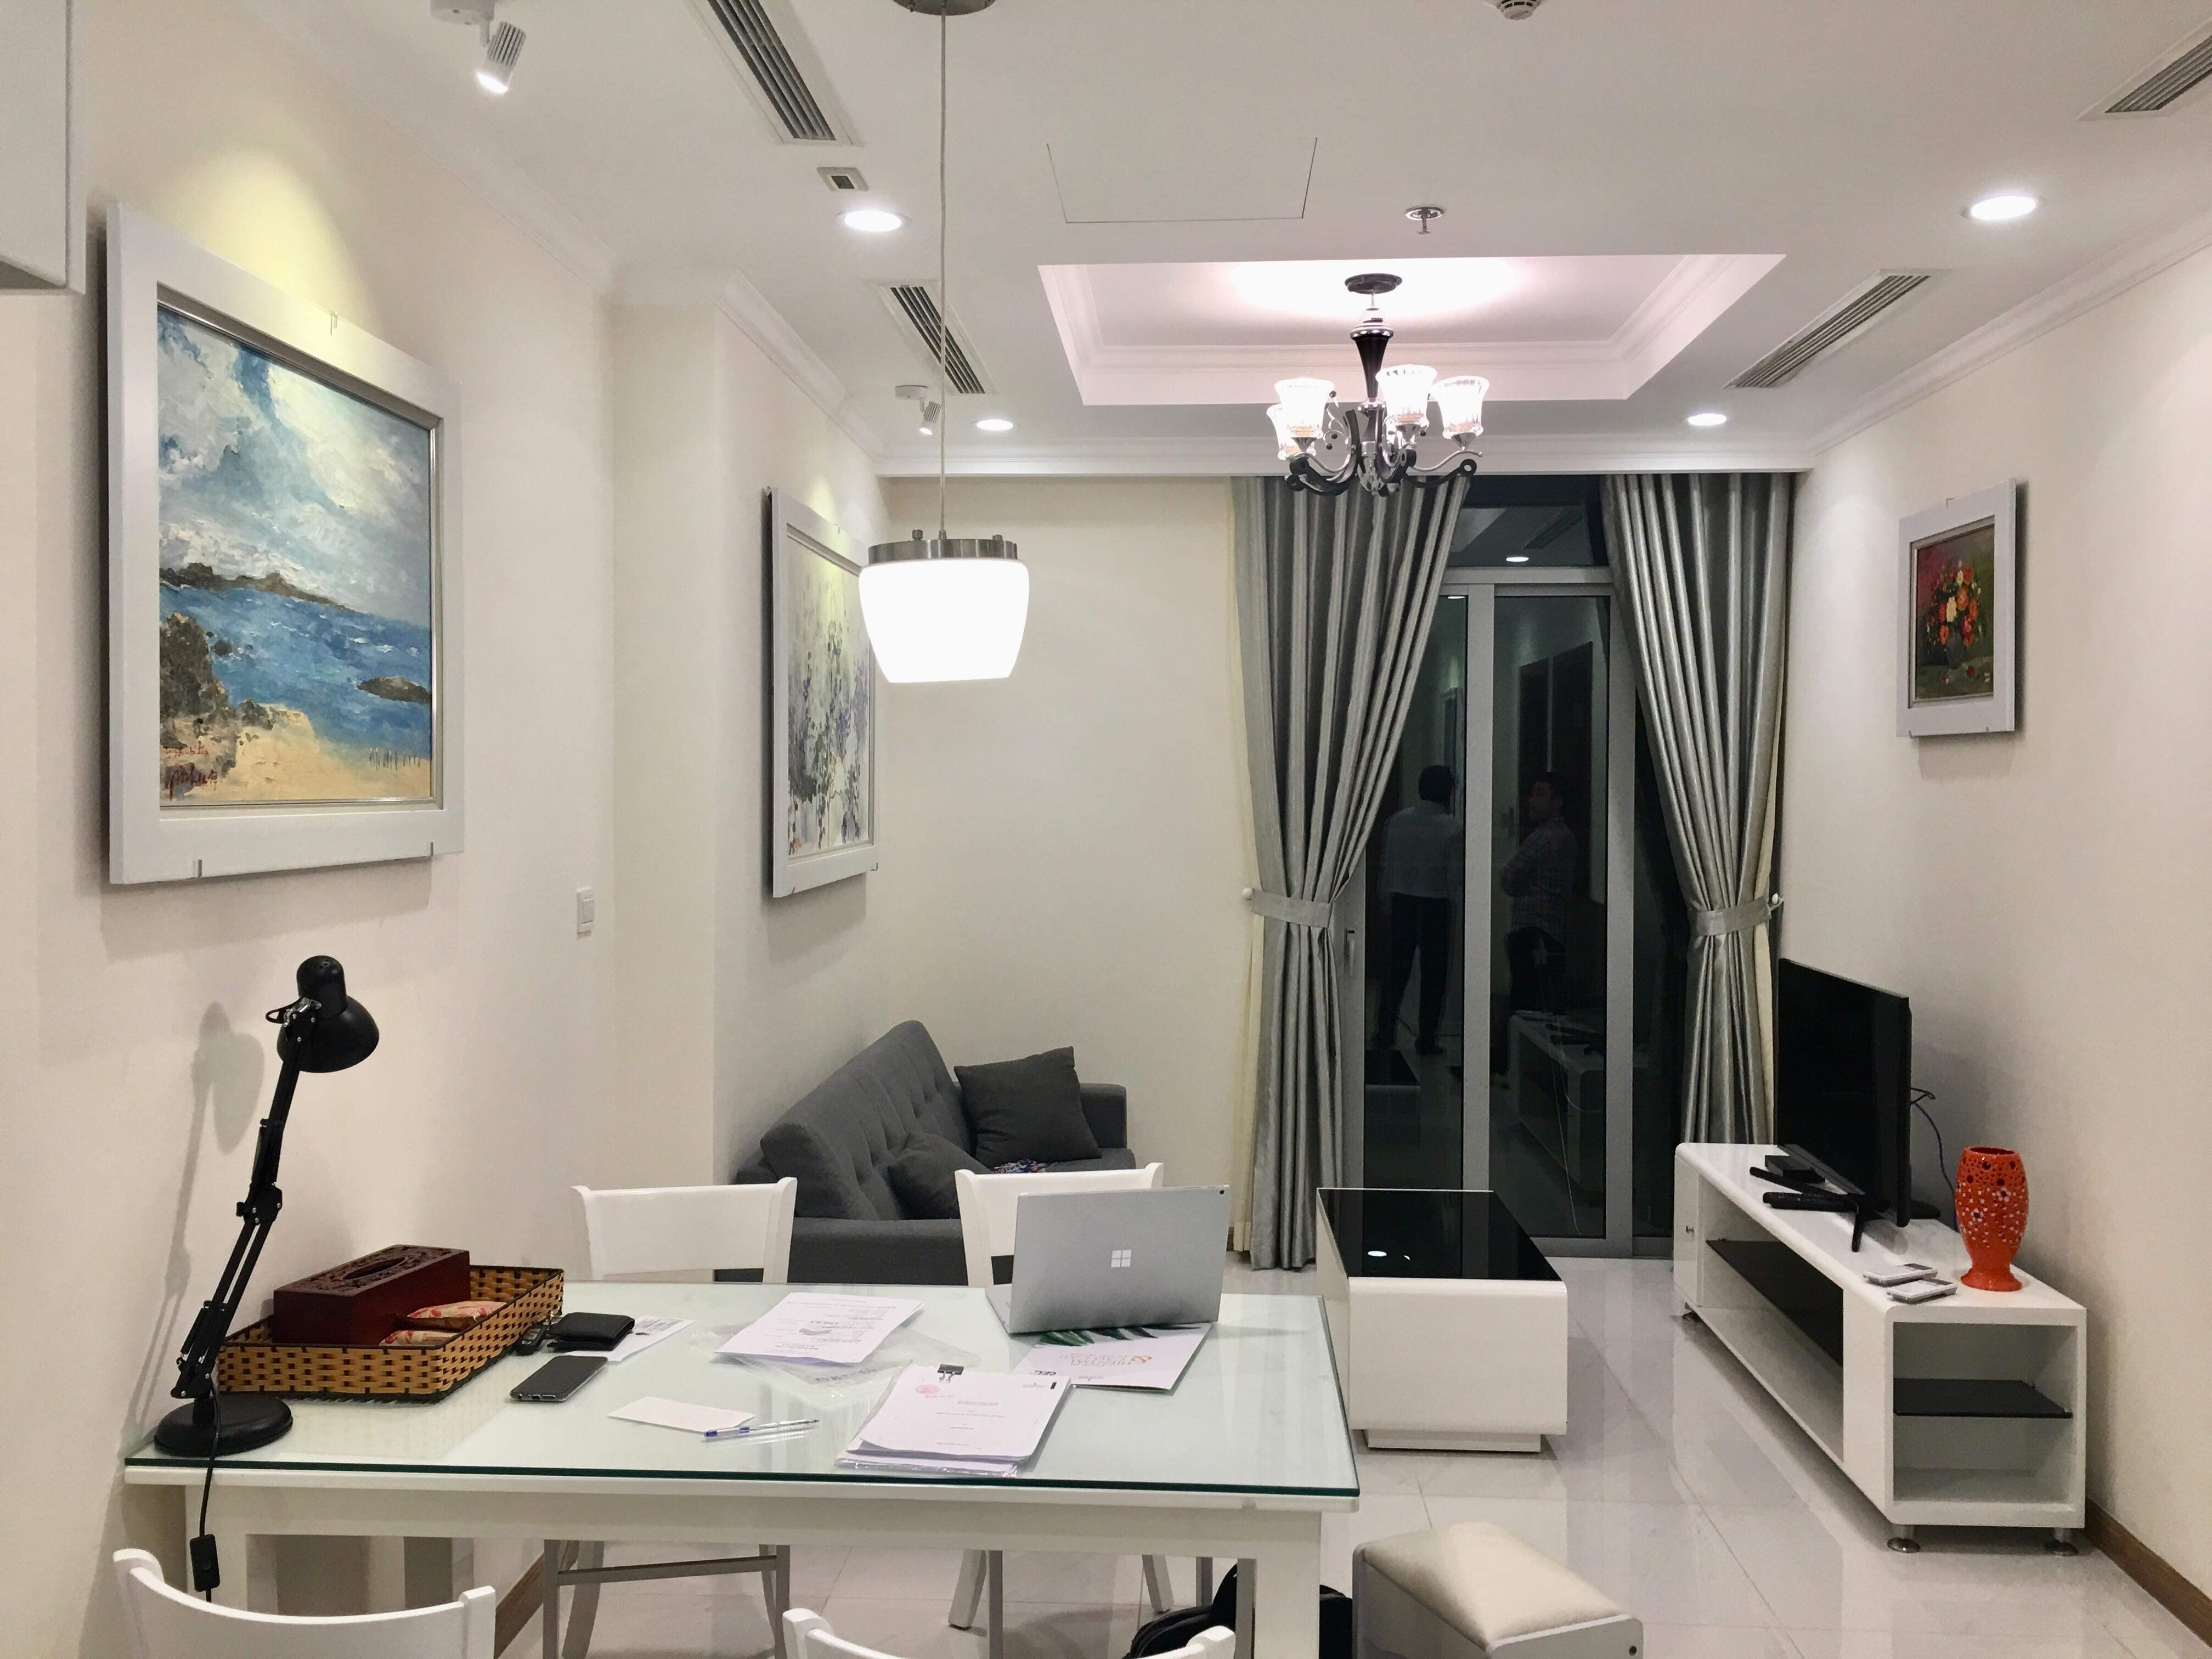 vinhomes central park apartment for rent in binh thanh district hcmc BT105P5291(1)